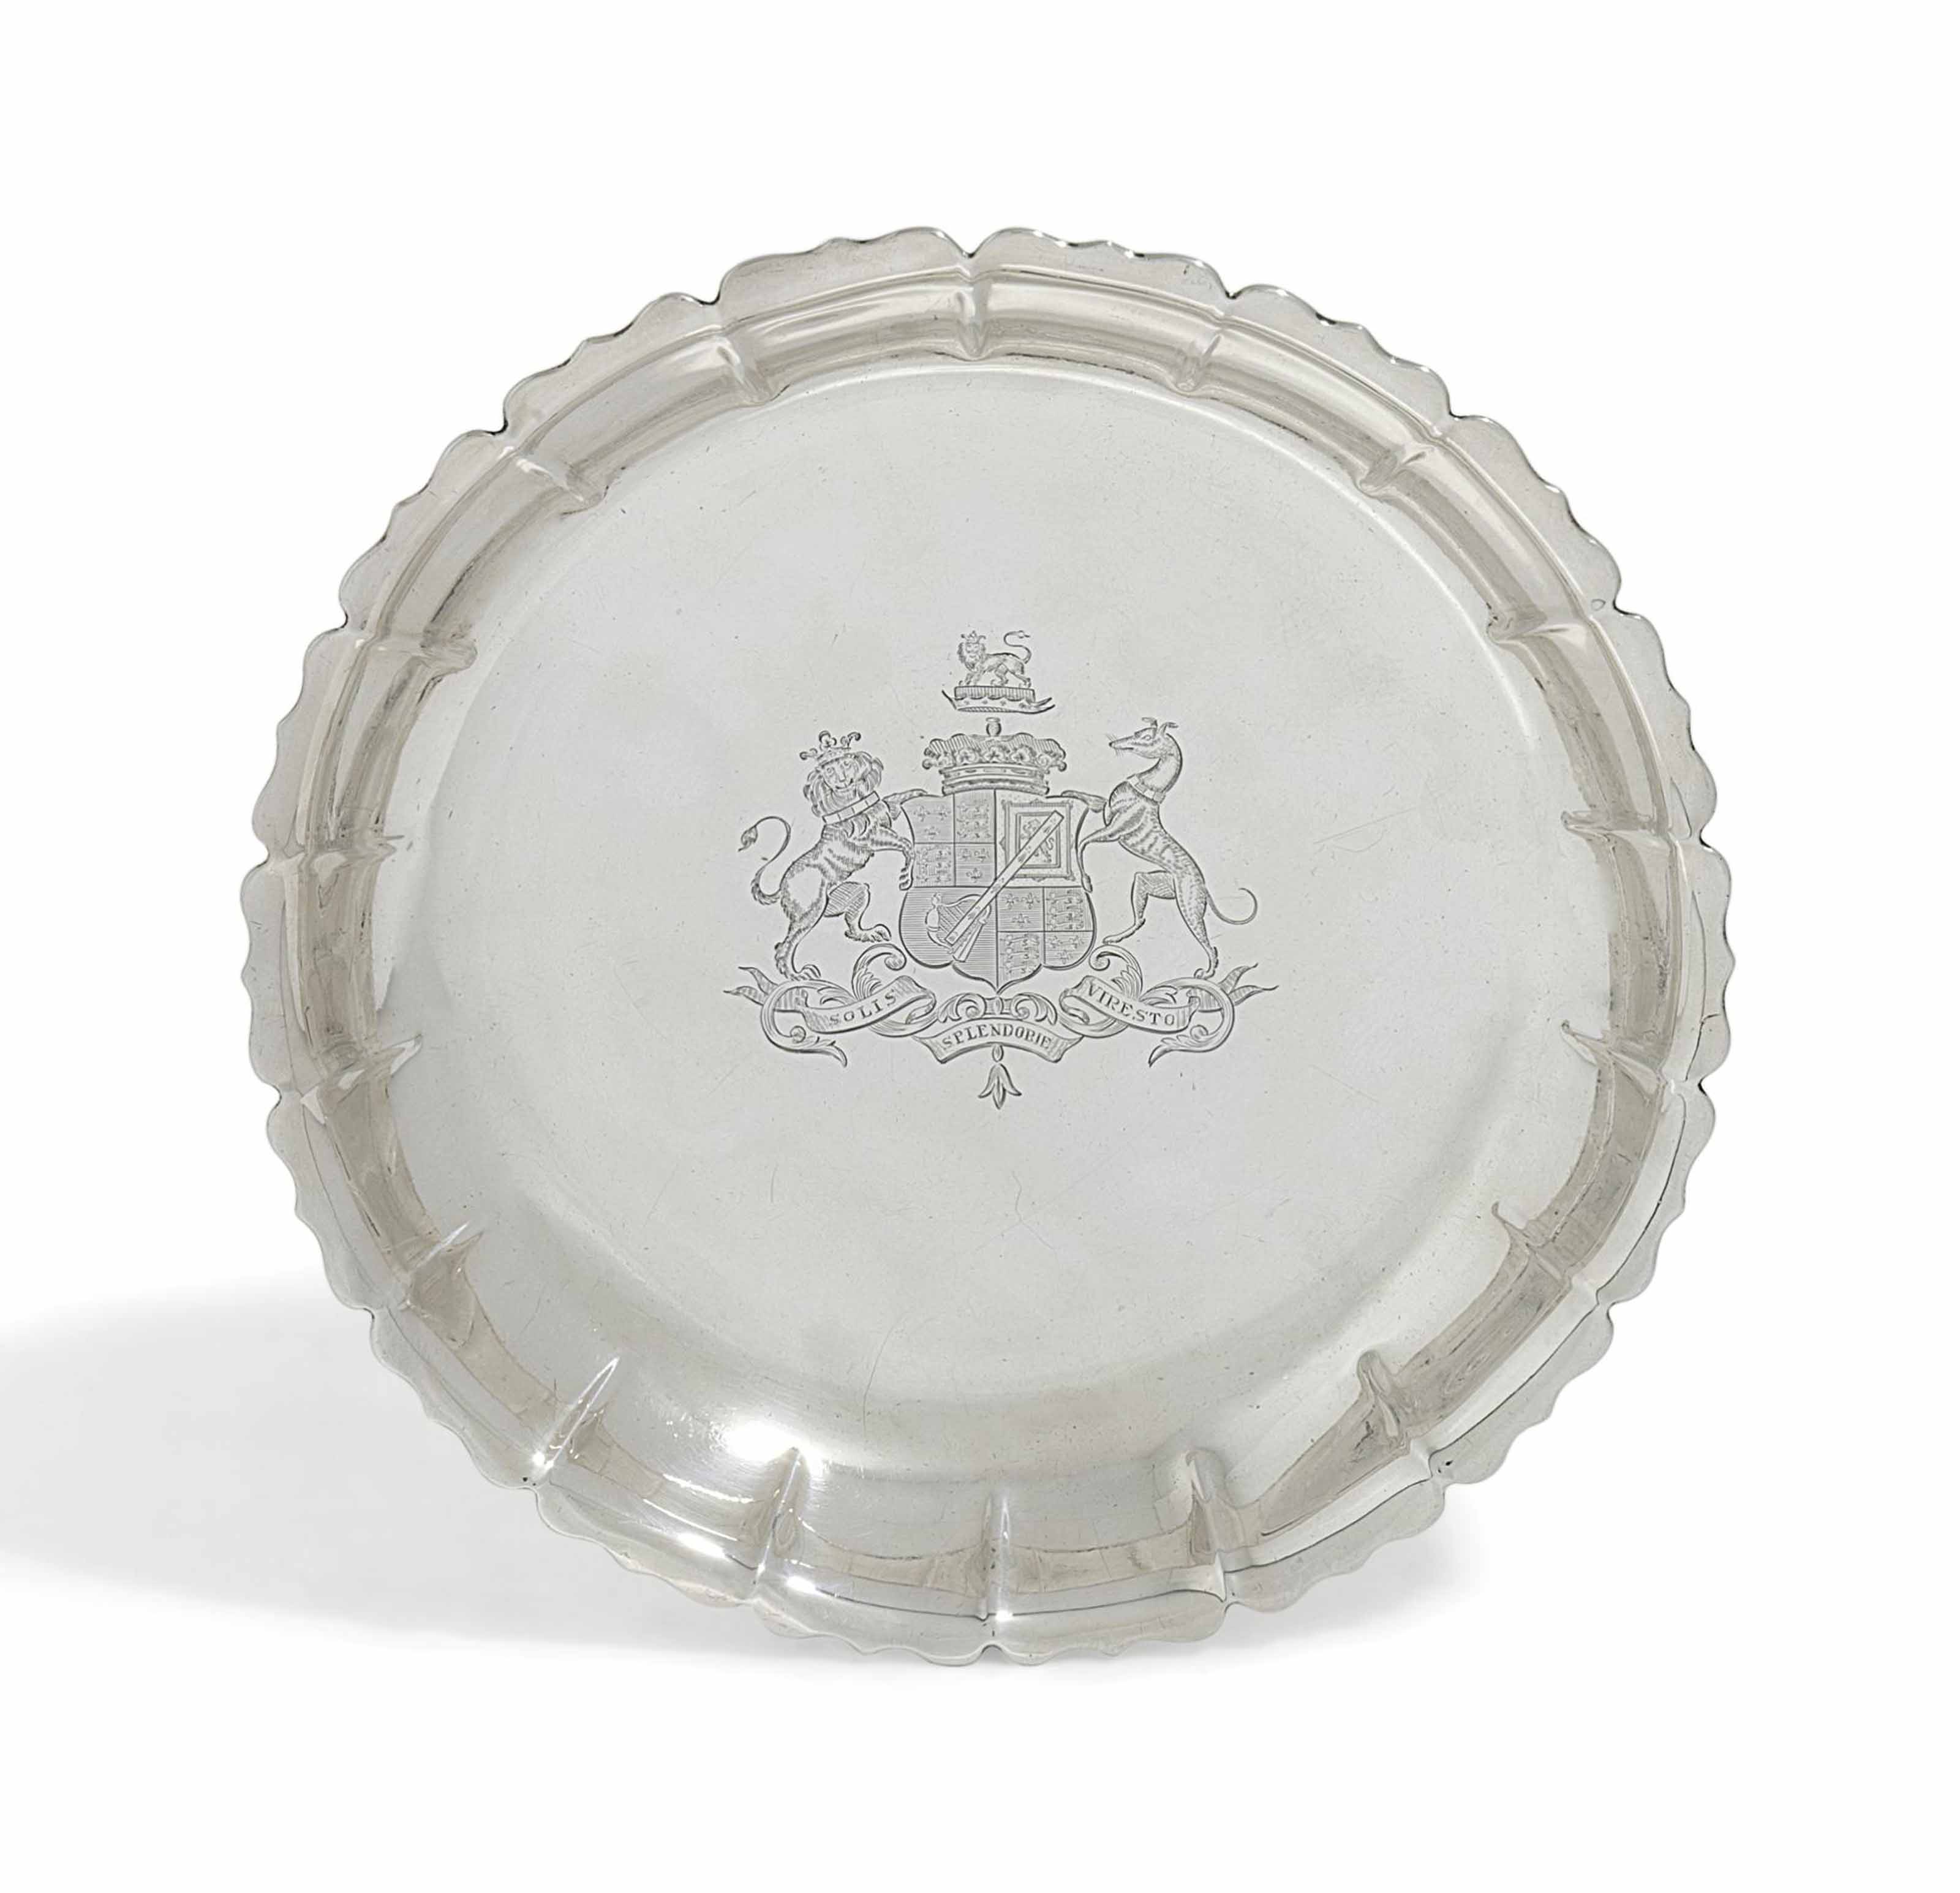 A GEORGE II SILVER STRAWBERRY OR EPERGNE-DISH